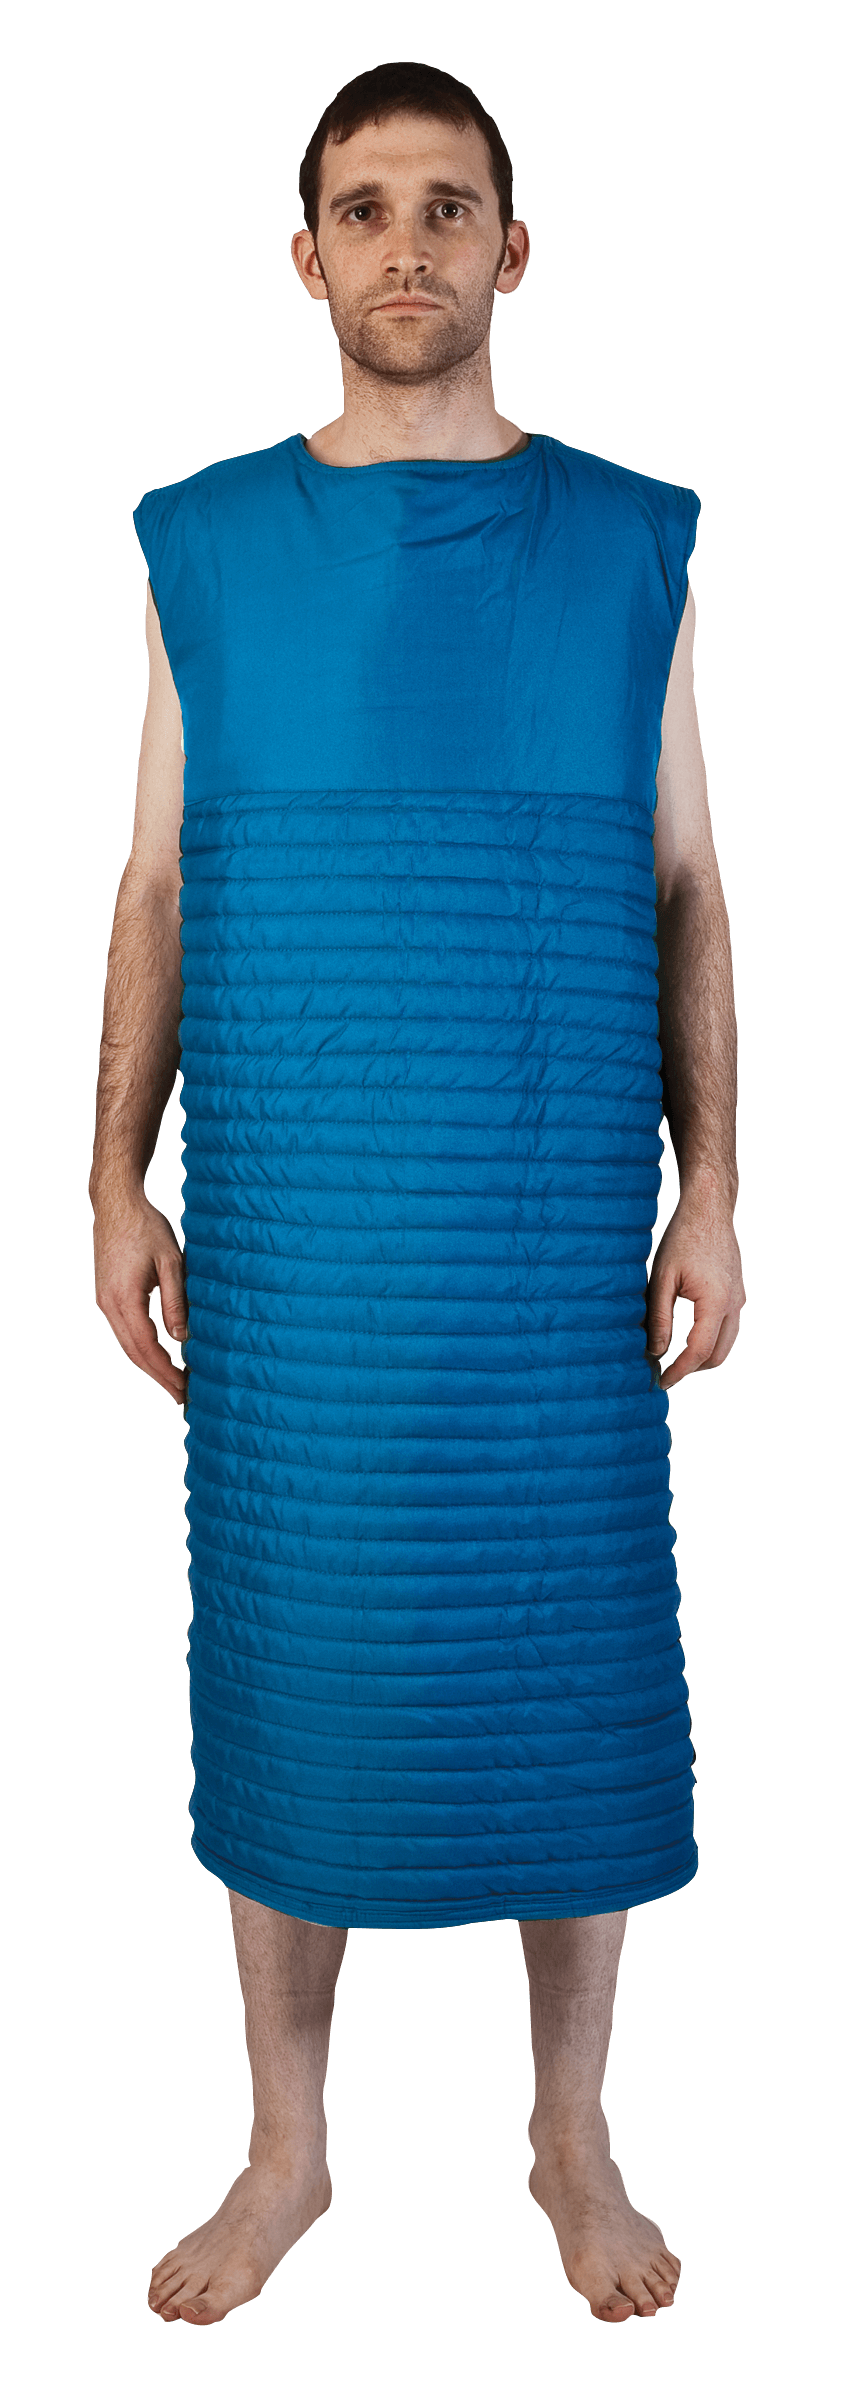 Blue Self Protection Smock - Fully Closed